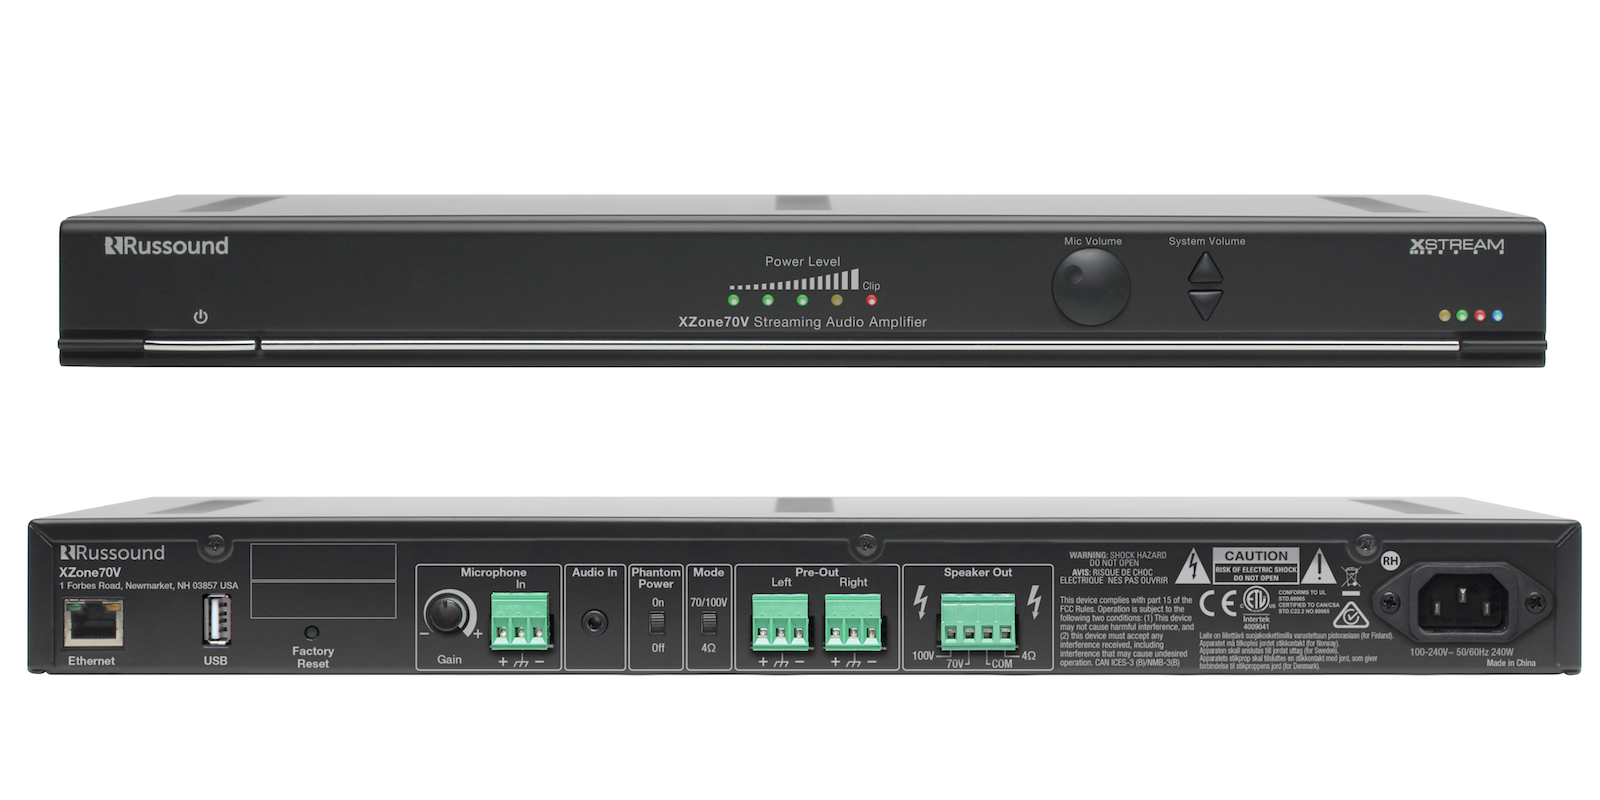 Connected Distribution Begins Shipping Russound Xzone70v Volume Control